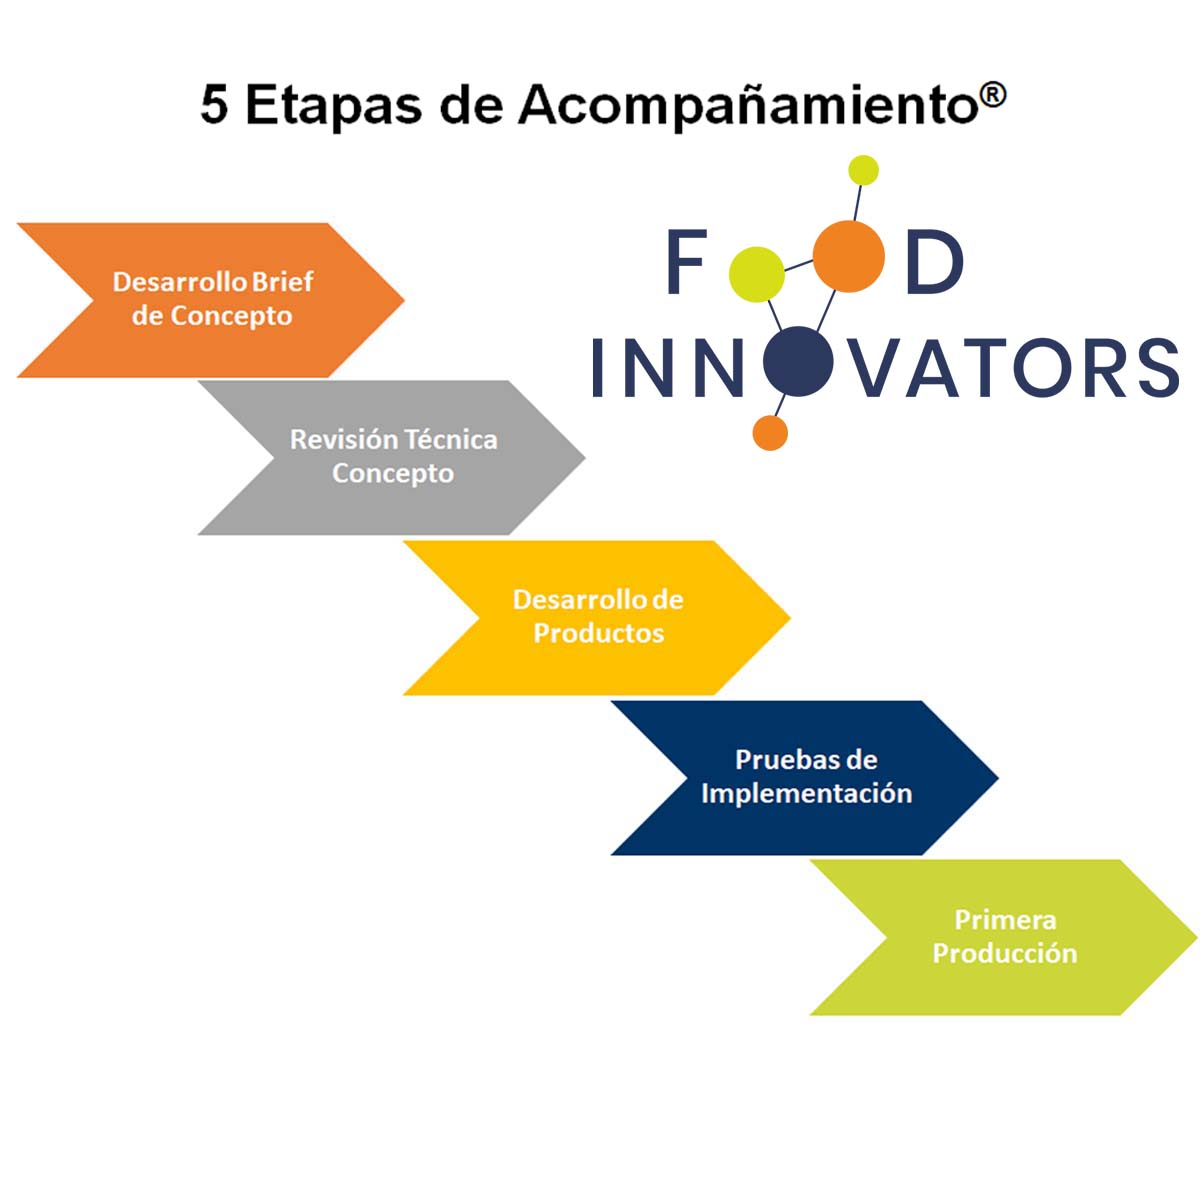 5 etapapas Food Innovators photo